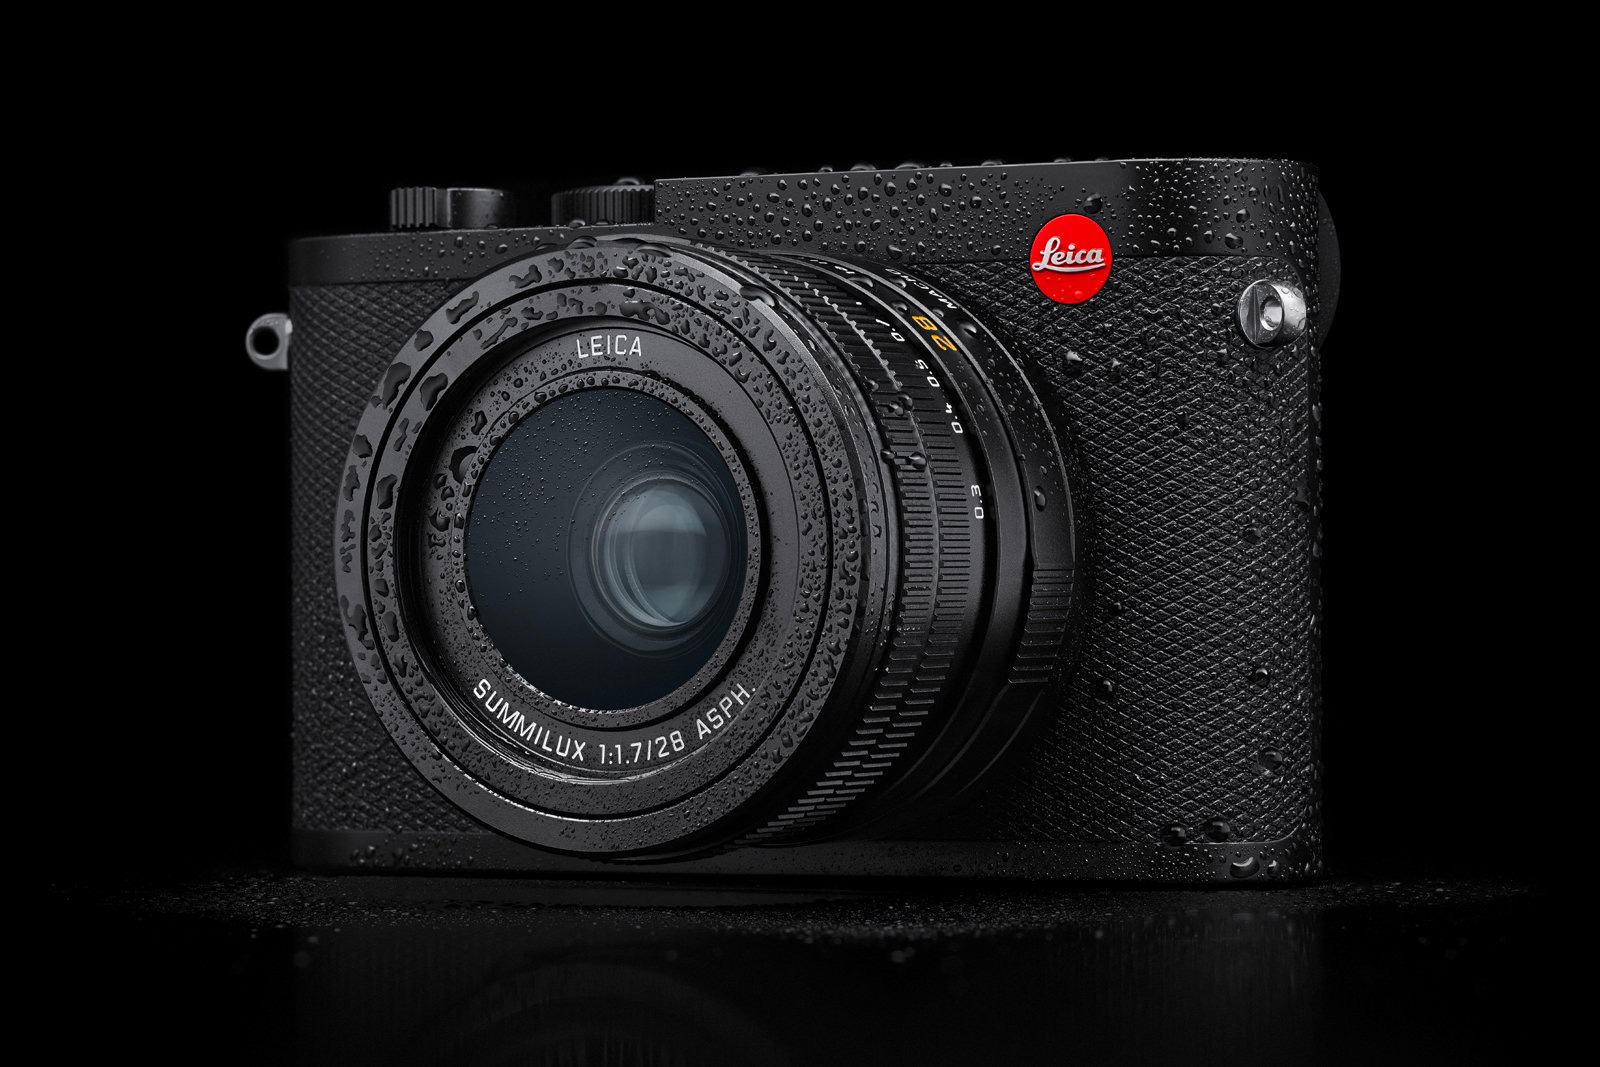 Leica's Compact Q2 Camera Has a Super-Size Sensor at werd.com